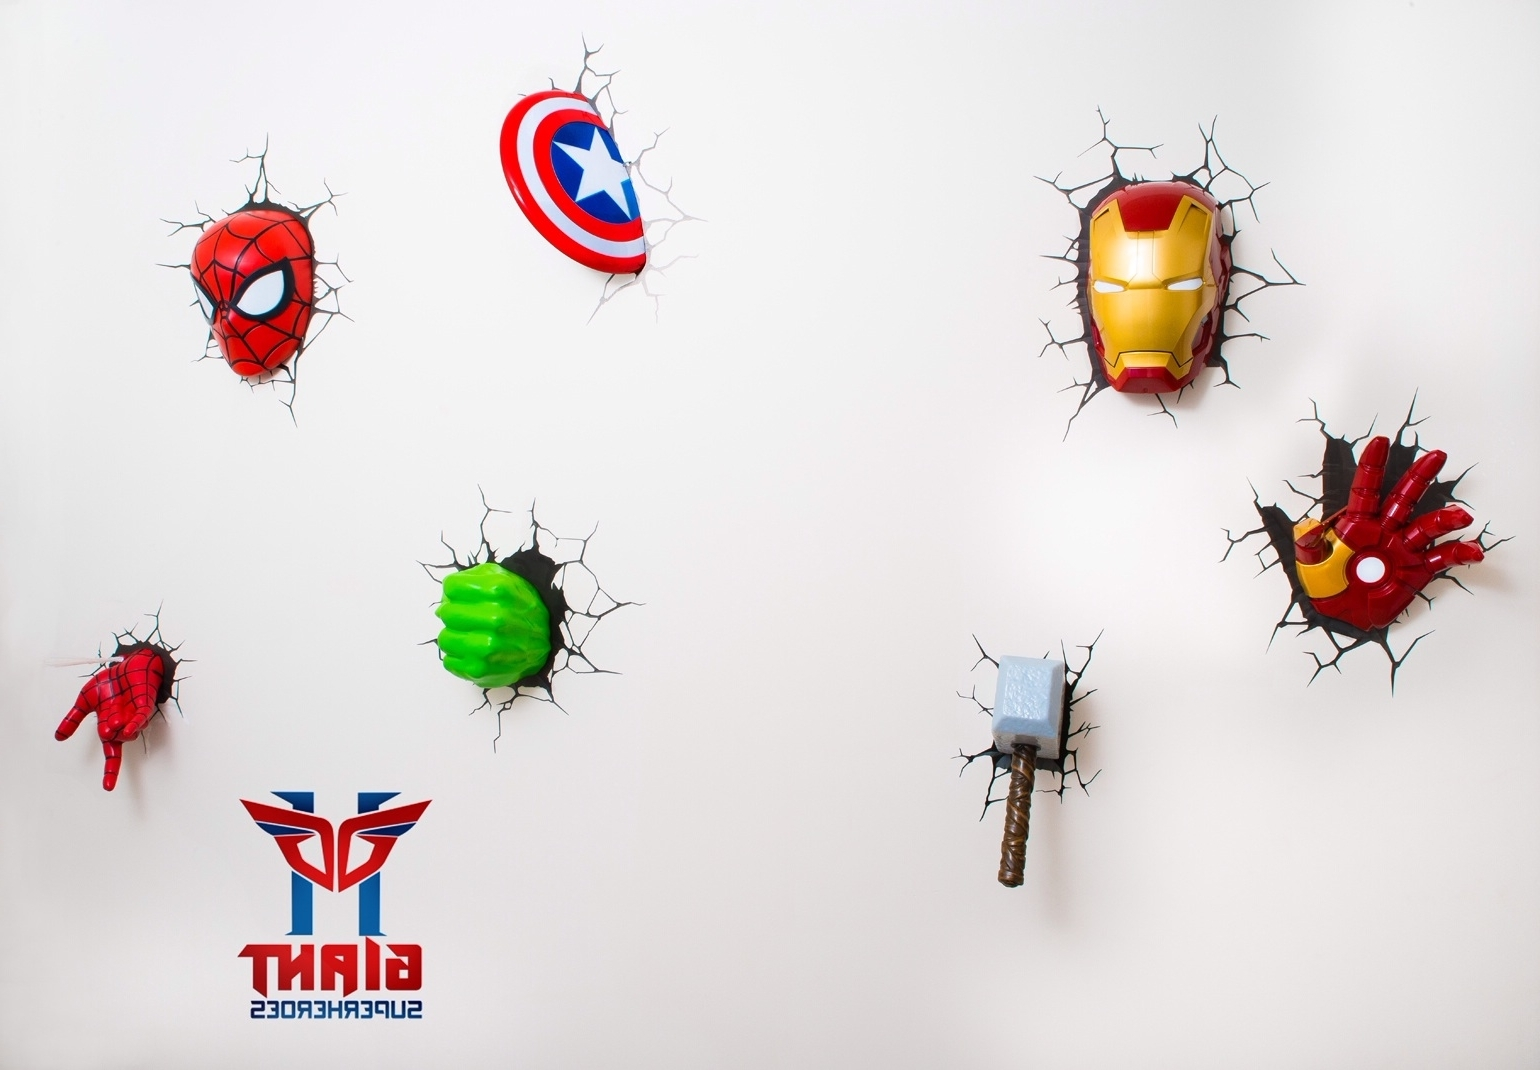 3D Wall Pertaining To Latest Avengers 3D Wall Art (Gallery 1 of 15)